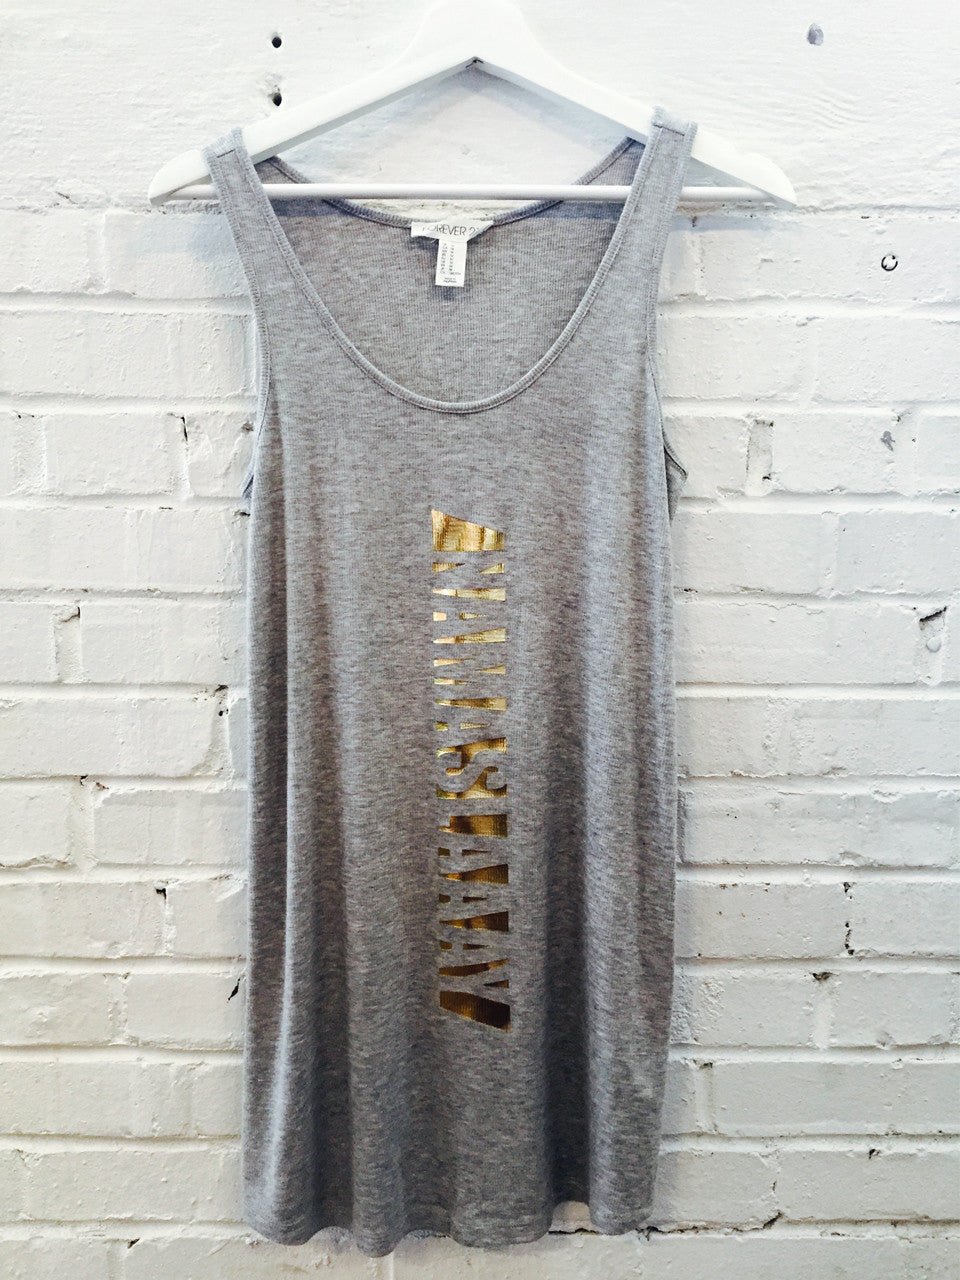 Namaslaay Longline Tank - Gray with Gold Foil